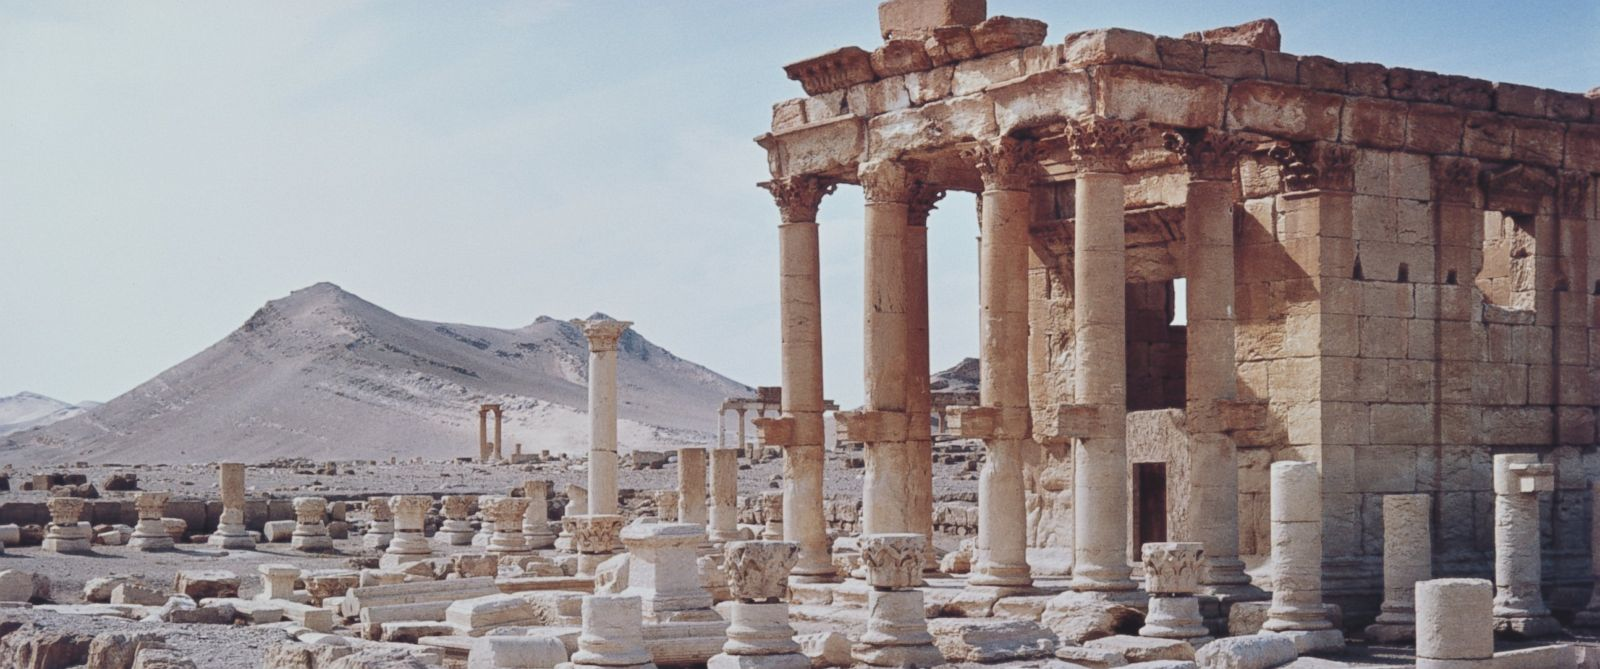 PHOTO: The temple of Baal-Shamin in Palmyra, Syria in an undated photo.